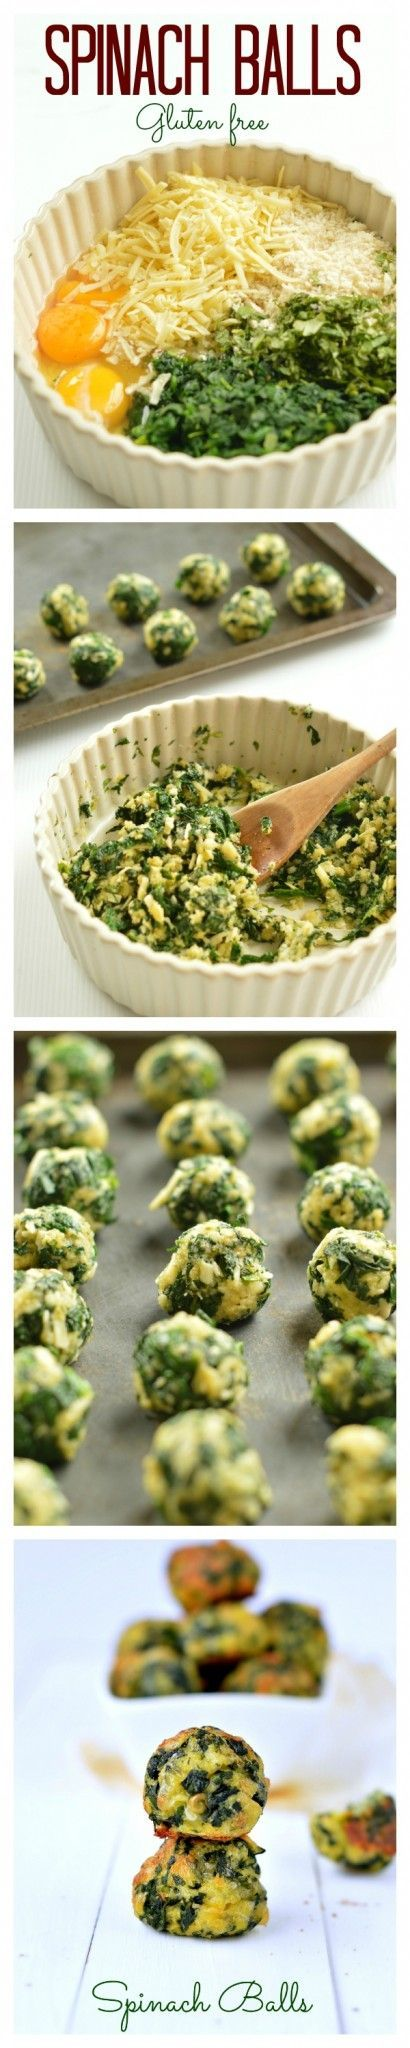 My fav Healthy Party Appetizers! Those Spinach balls are made with only 5 ingredients and take few minutes to prepare.  #appetizers #spinach #cheese